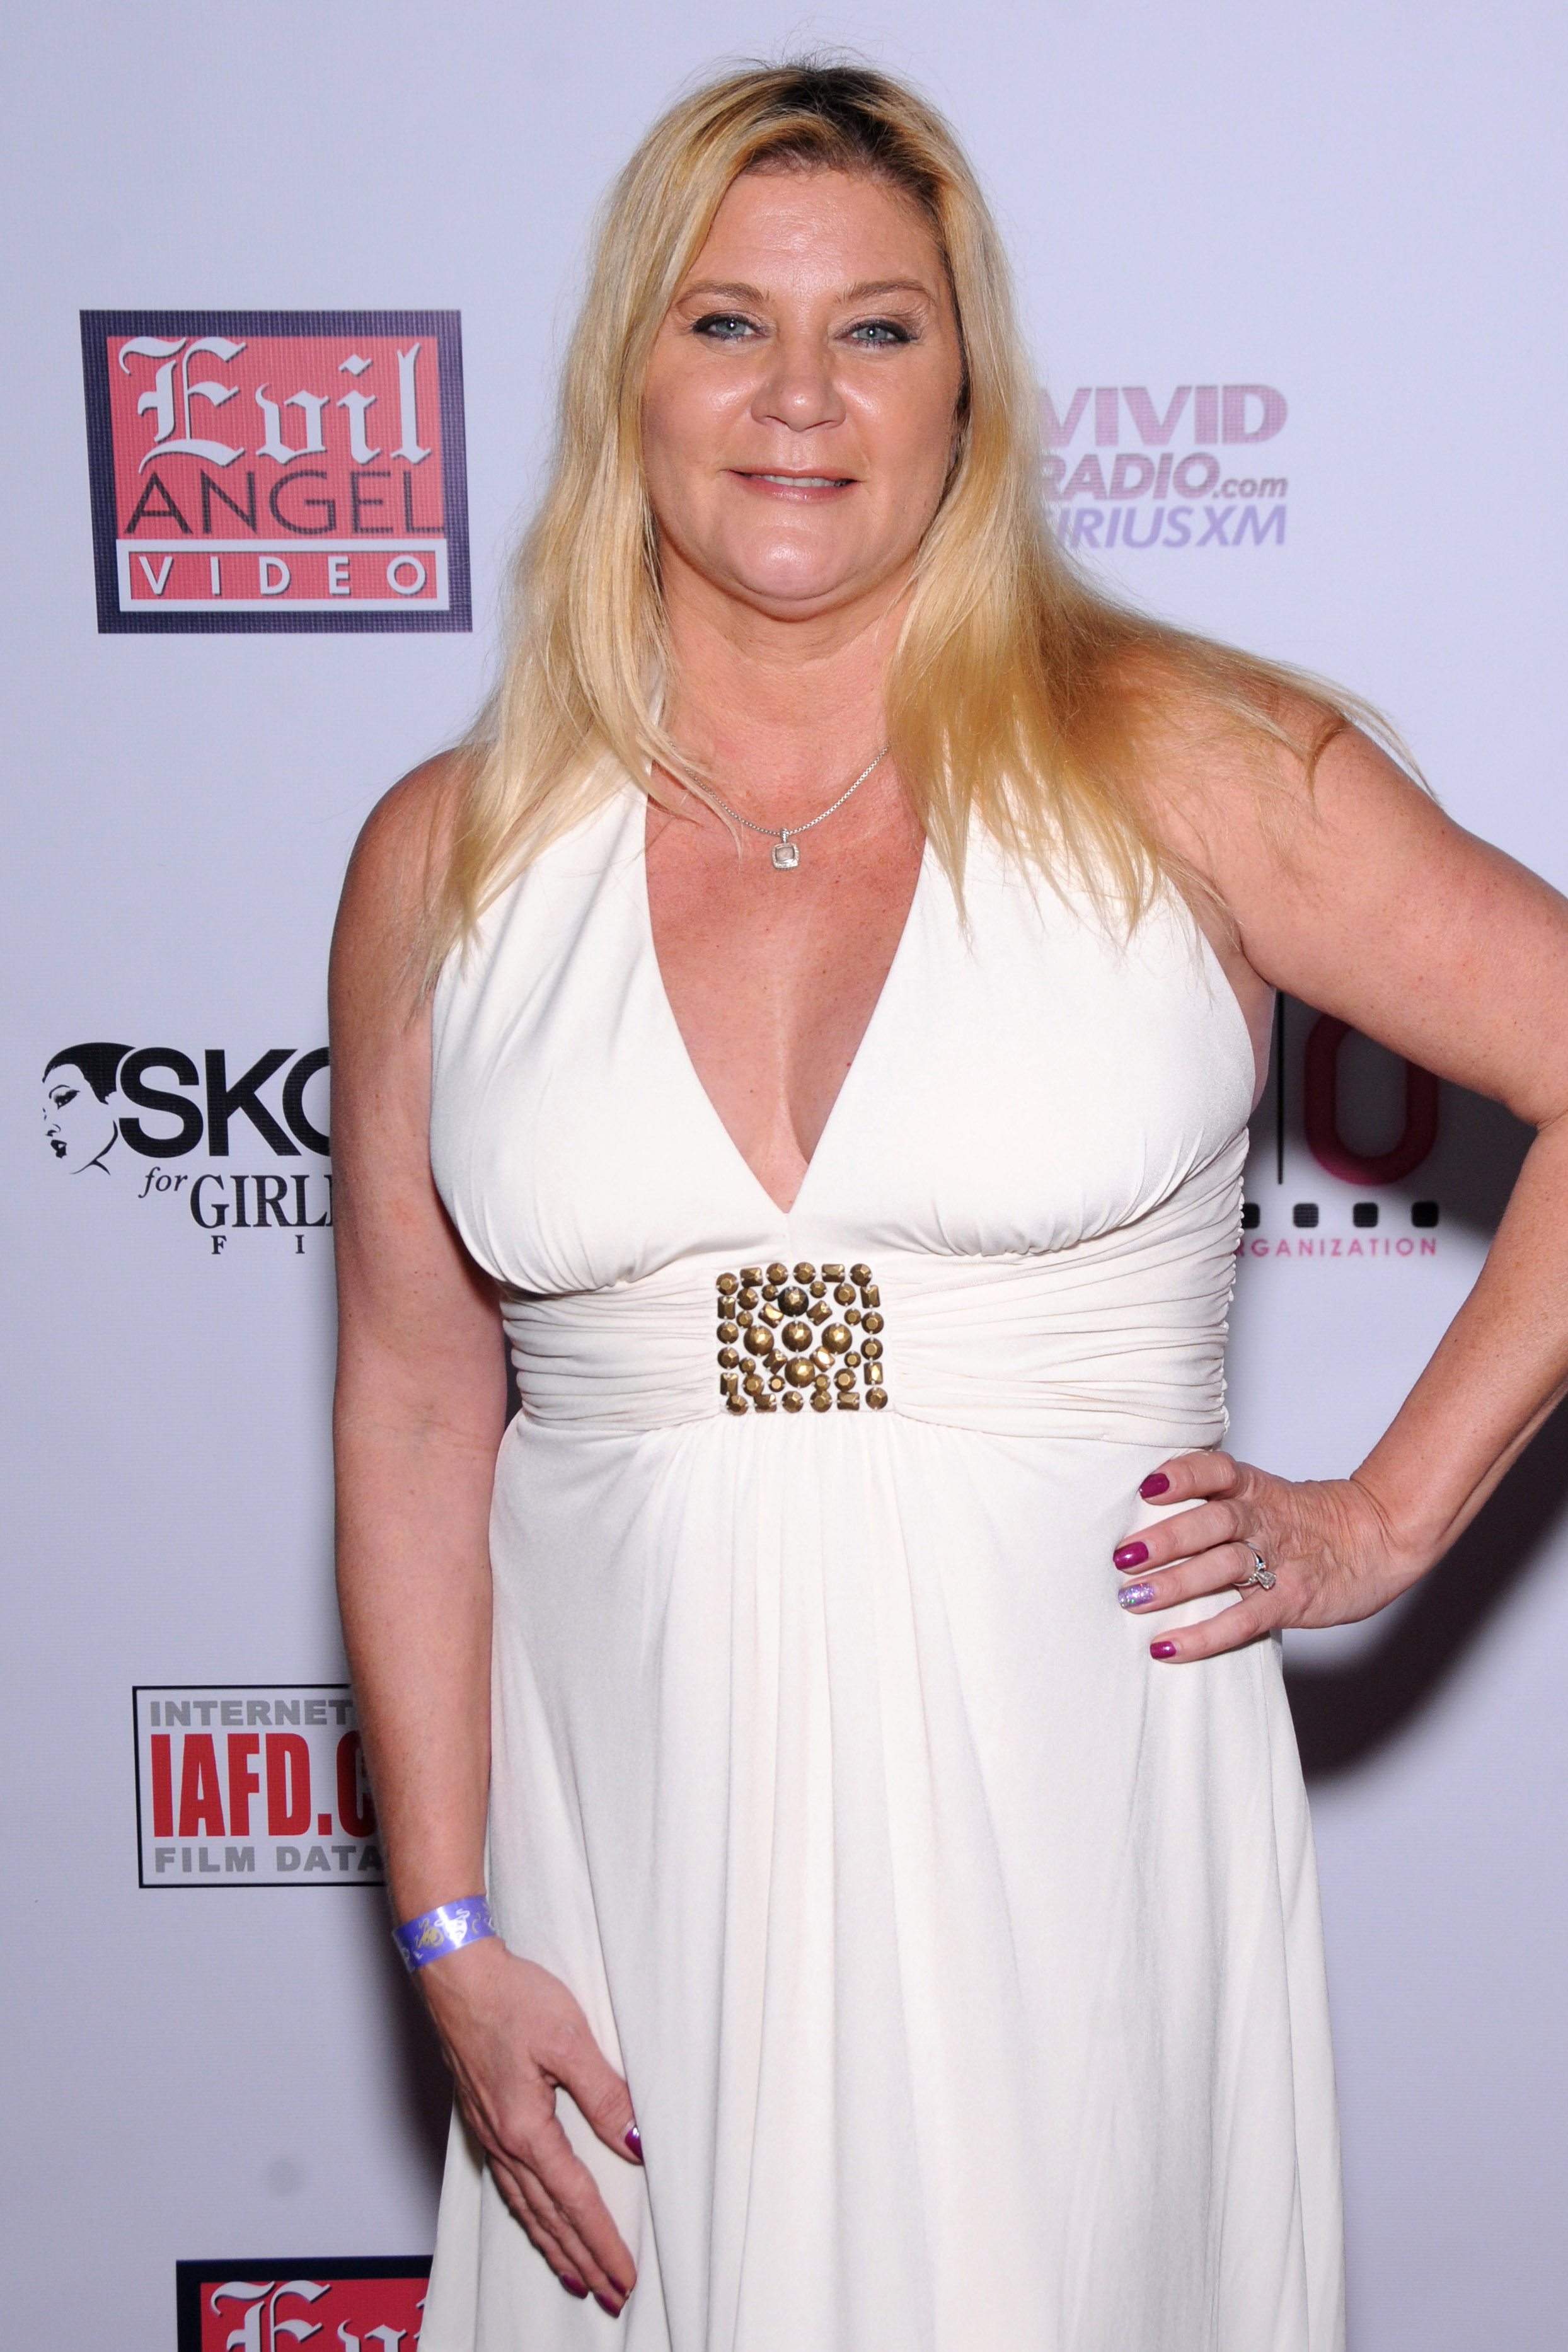 Ginger Allen Nude Pics. Ginger lynn nude pictures, images